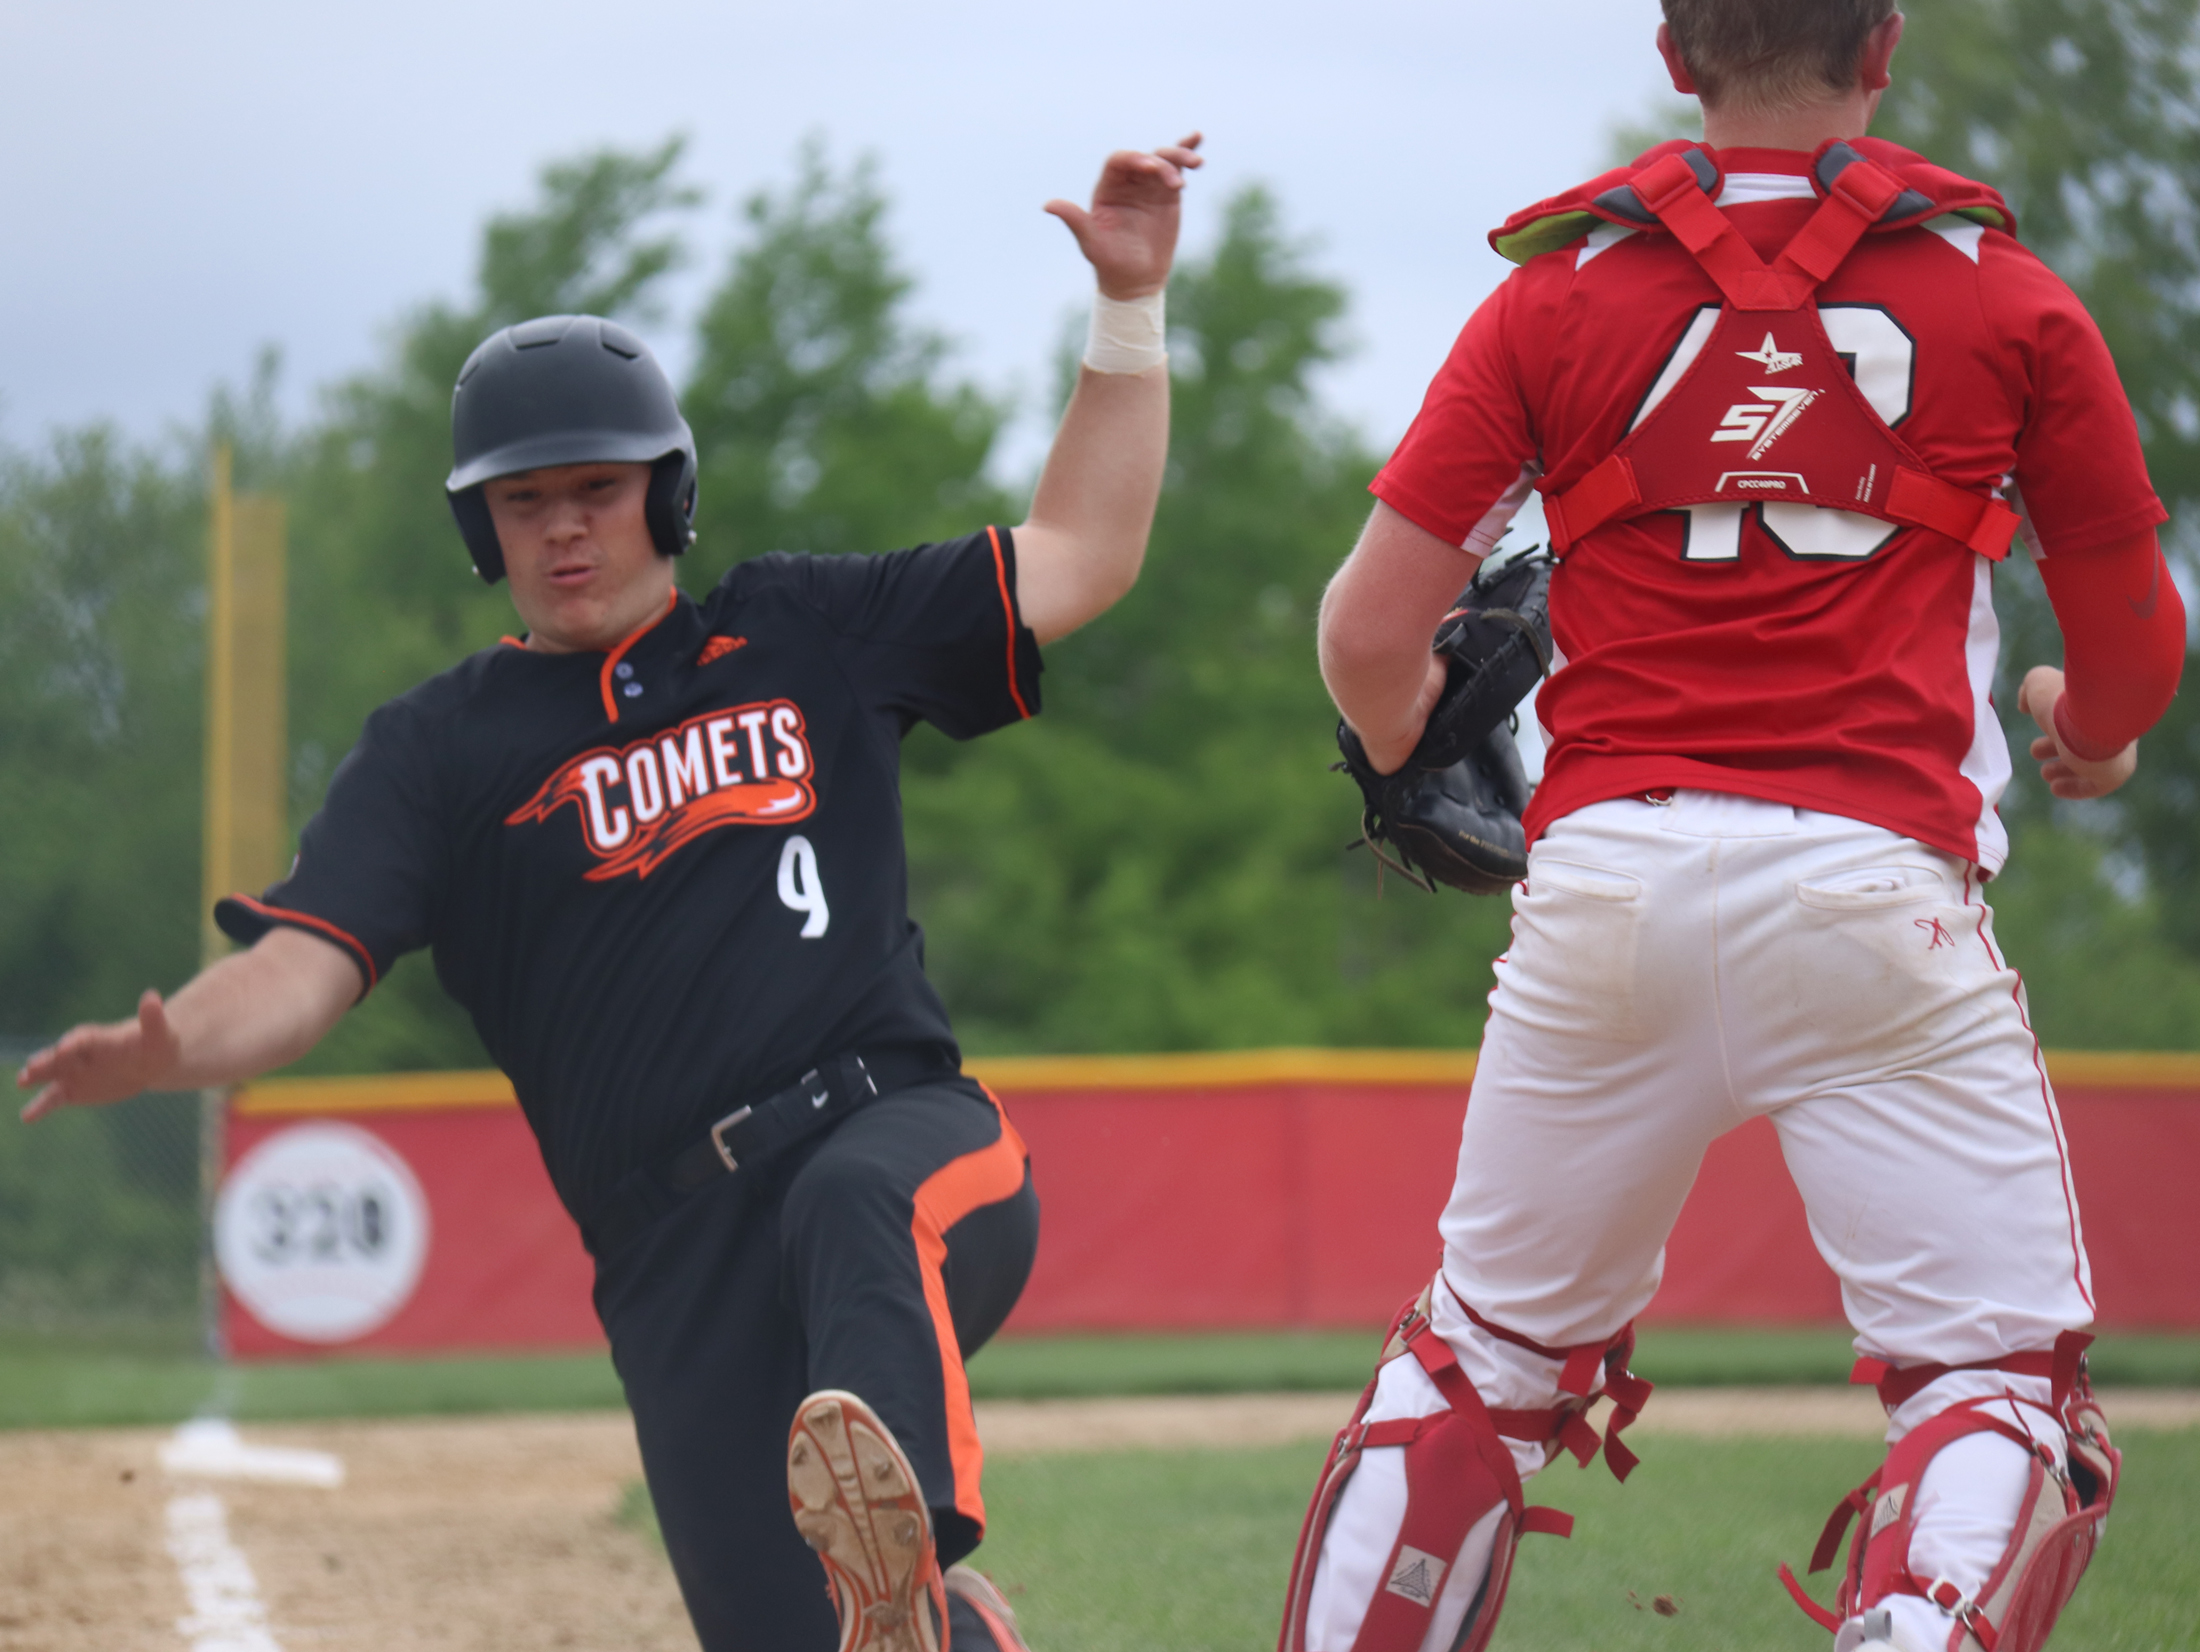 Comets win 12-3 playing Turkey Valley 'house rules'